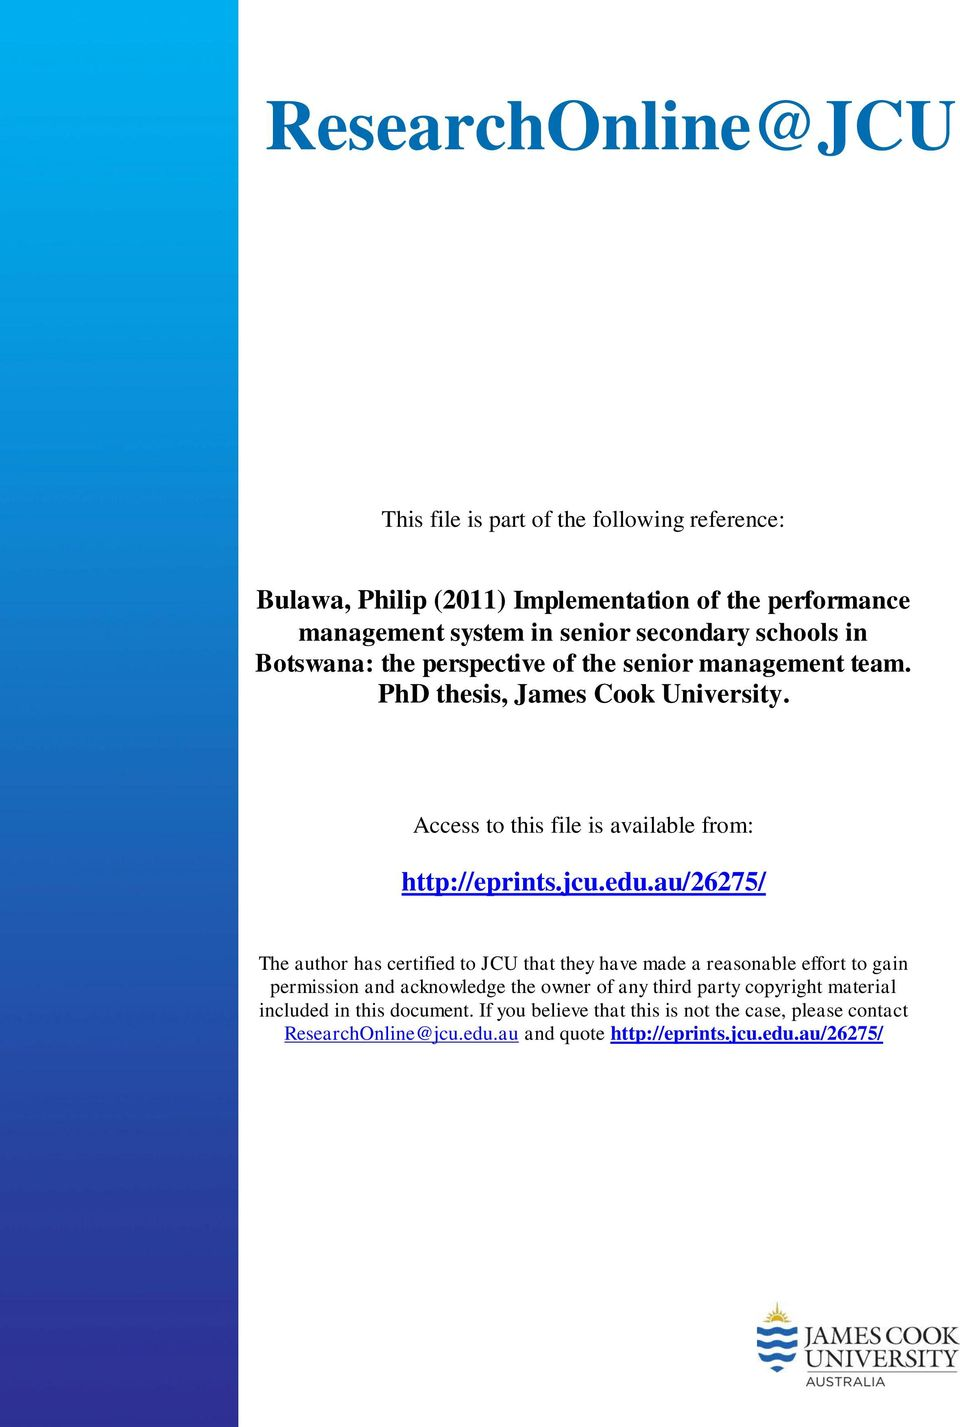 edu.au/26275/ The author has certified to JCU that they have made a reasonable effort to gain permission and acknowledge the owner of any third party copyright